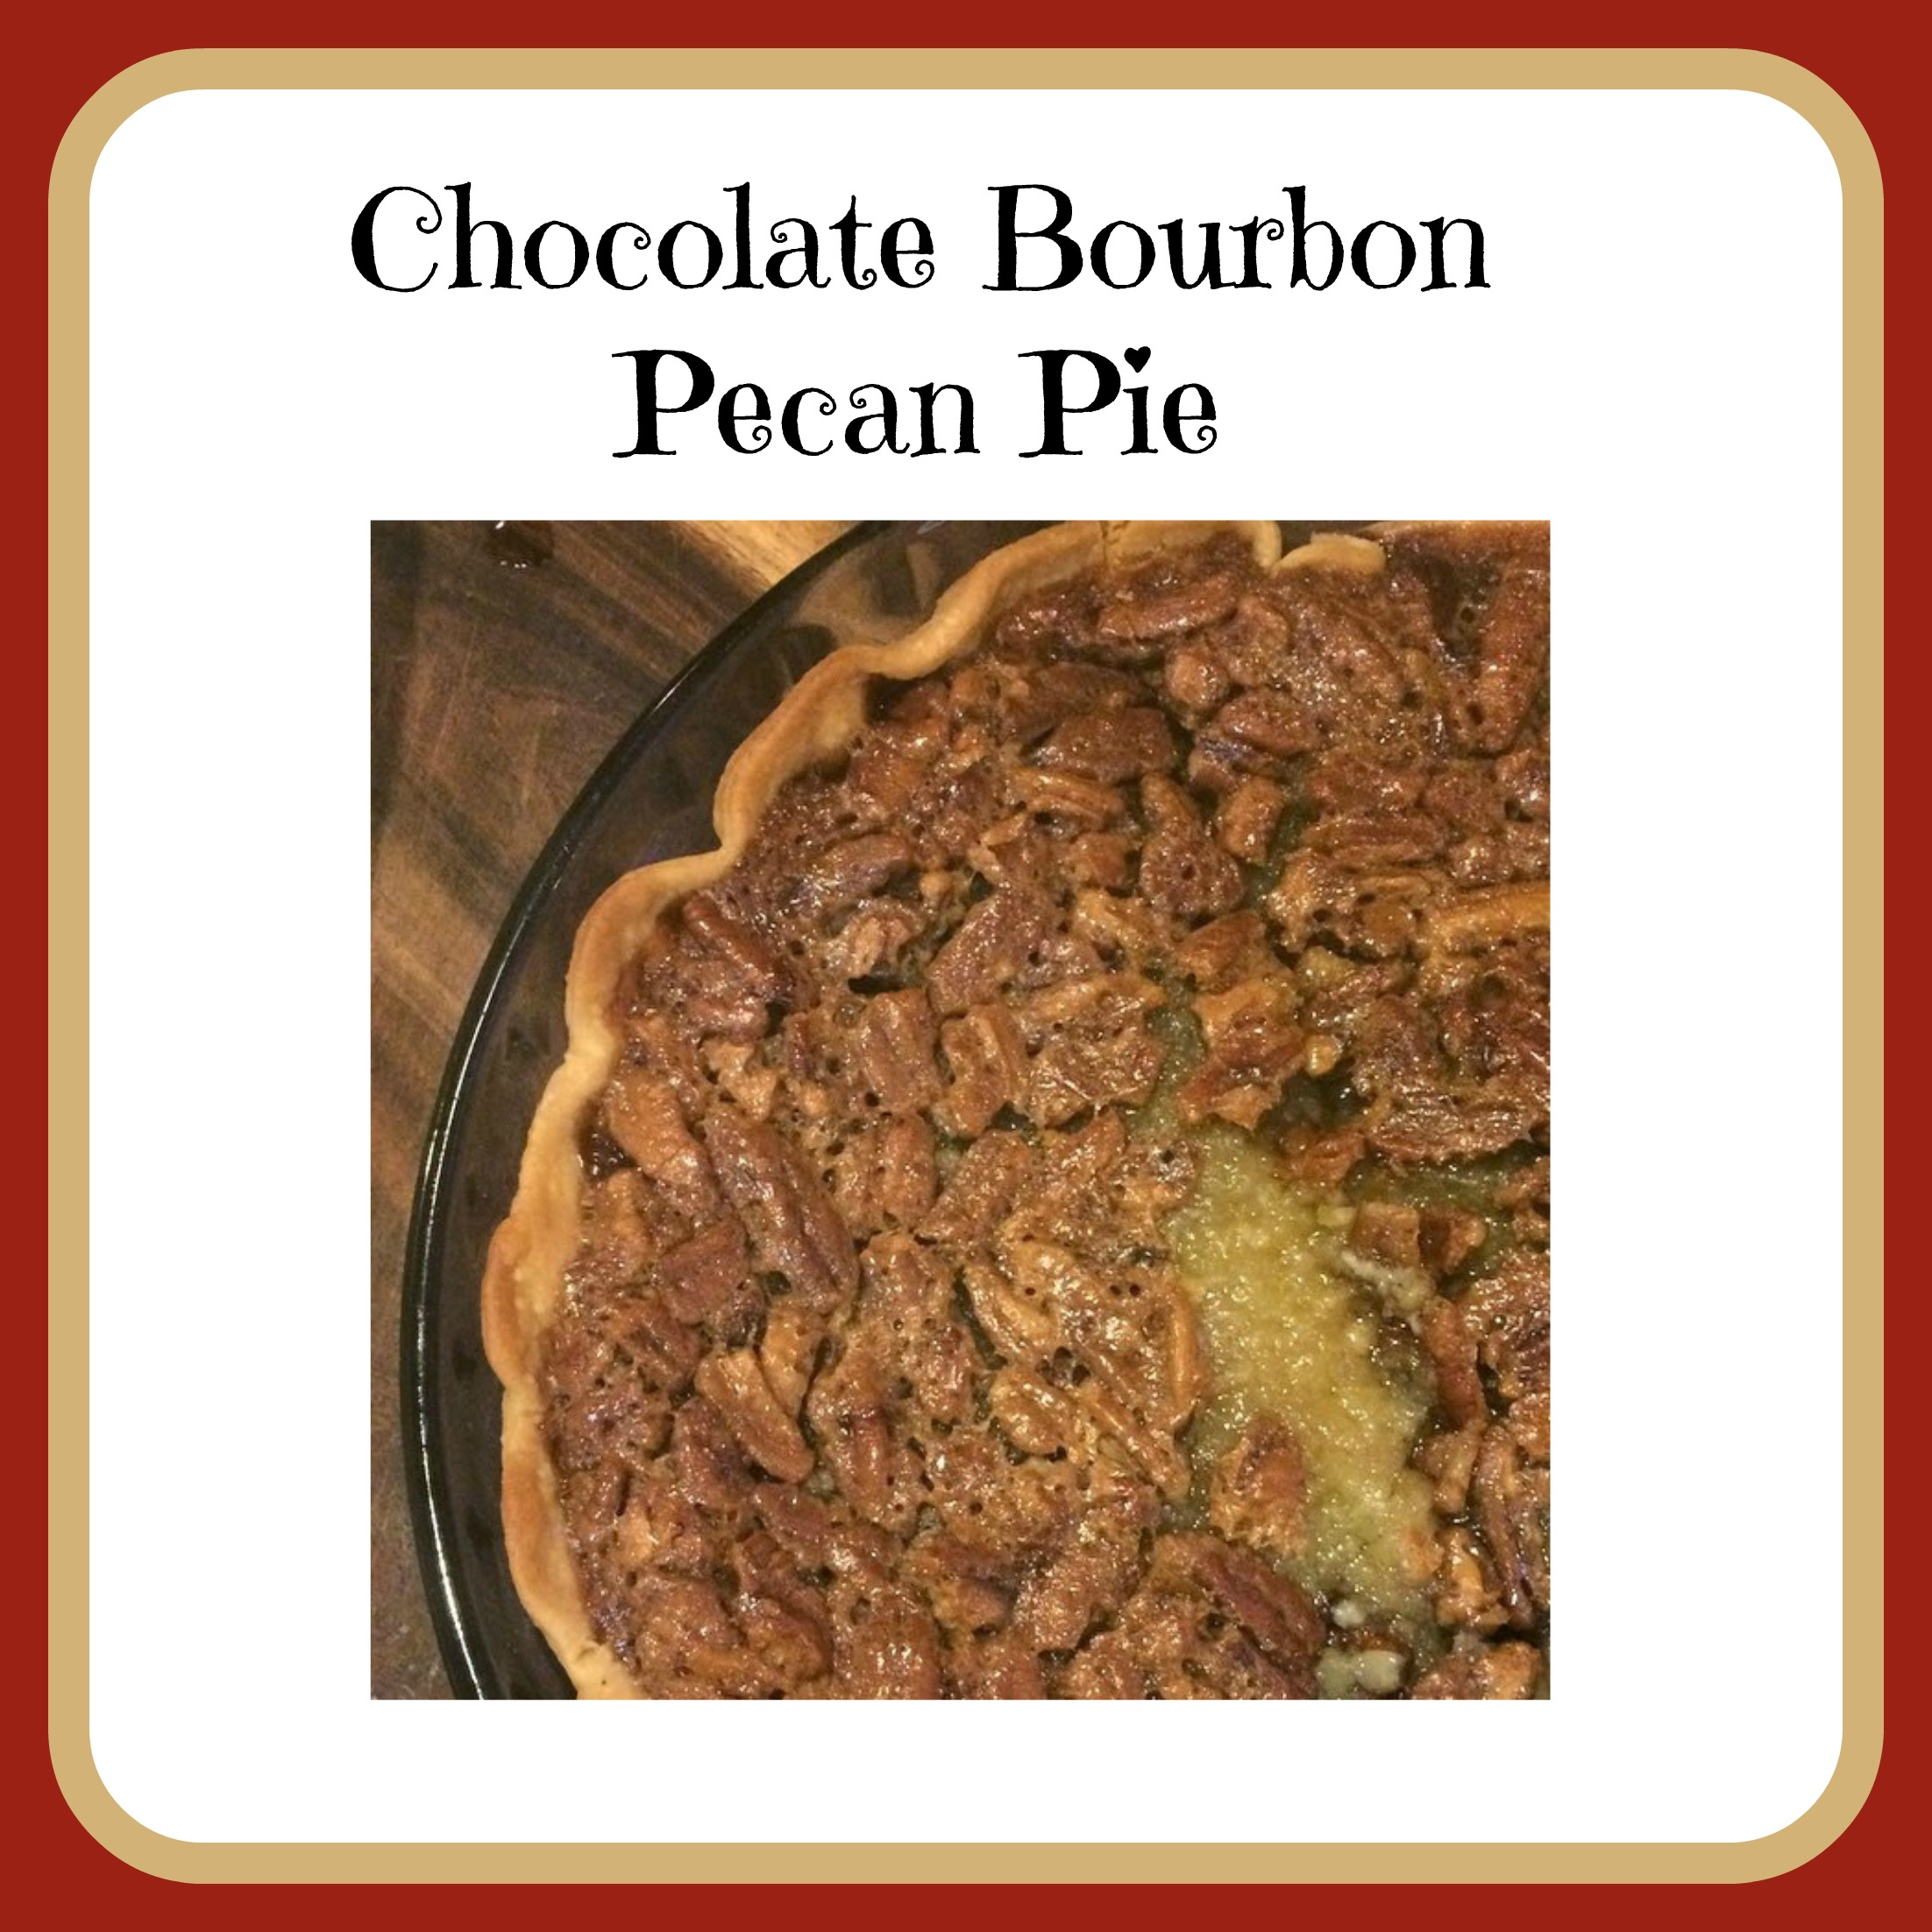 ... pies are tasty too but if given the choice i would pick the pecan pie